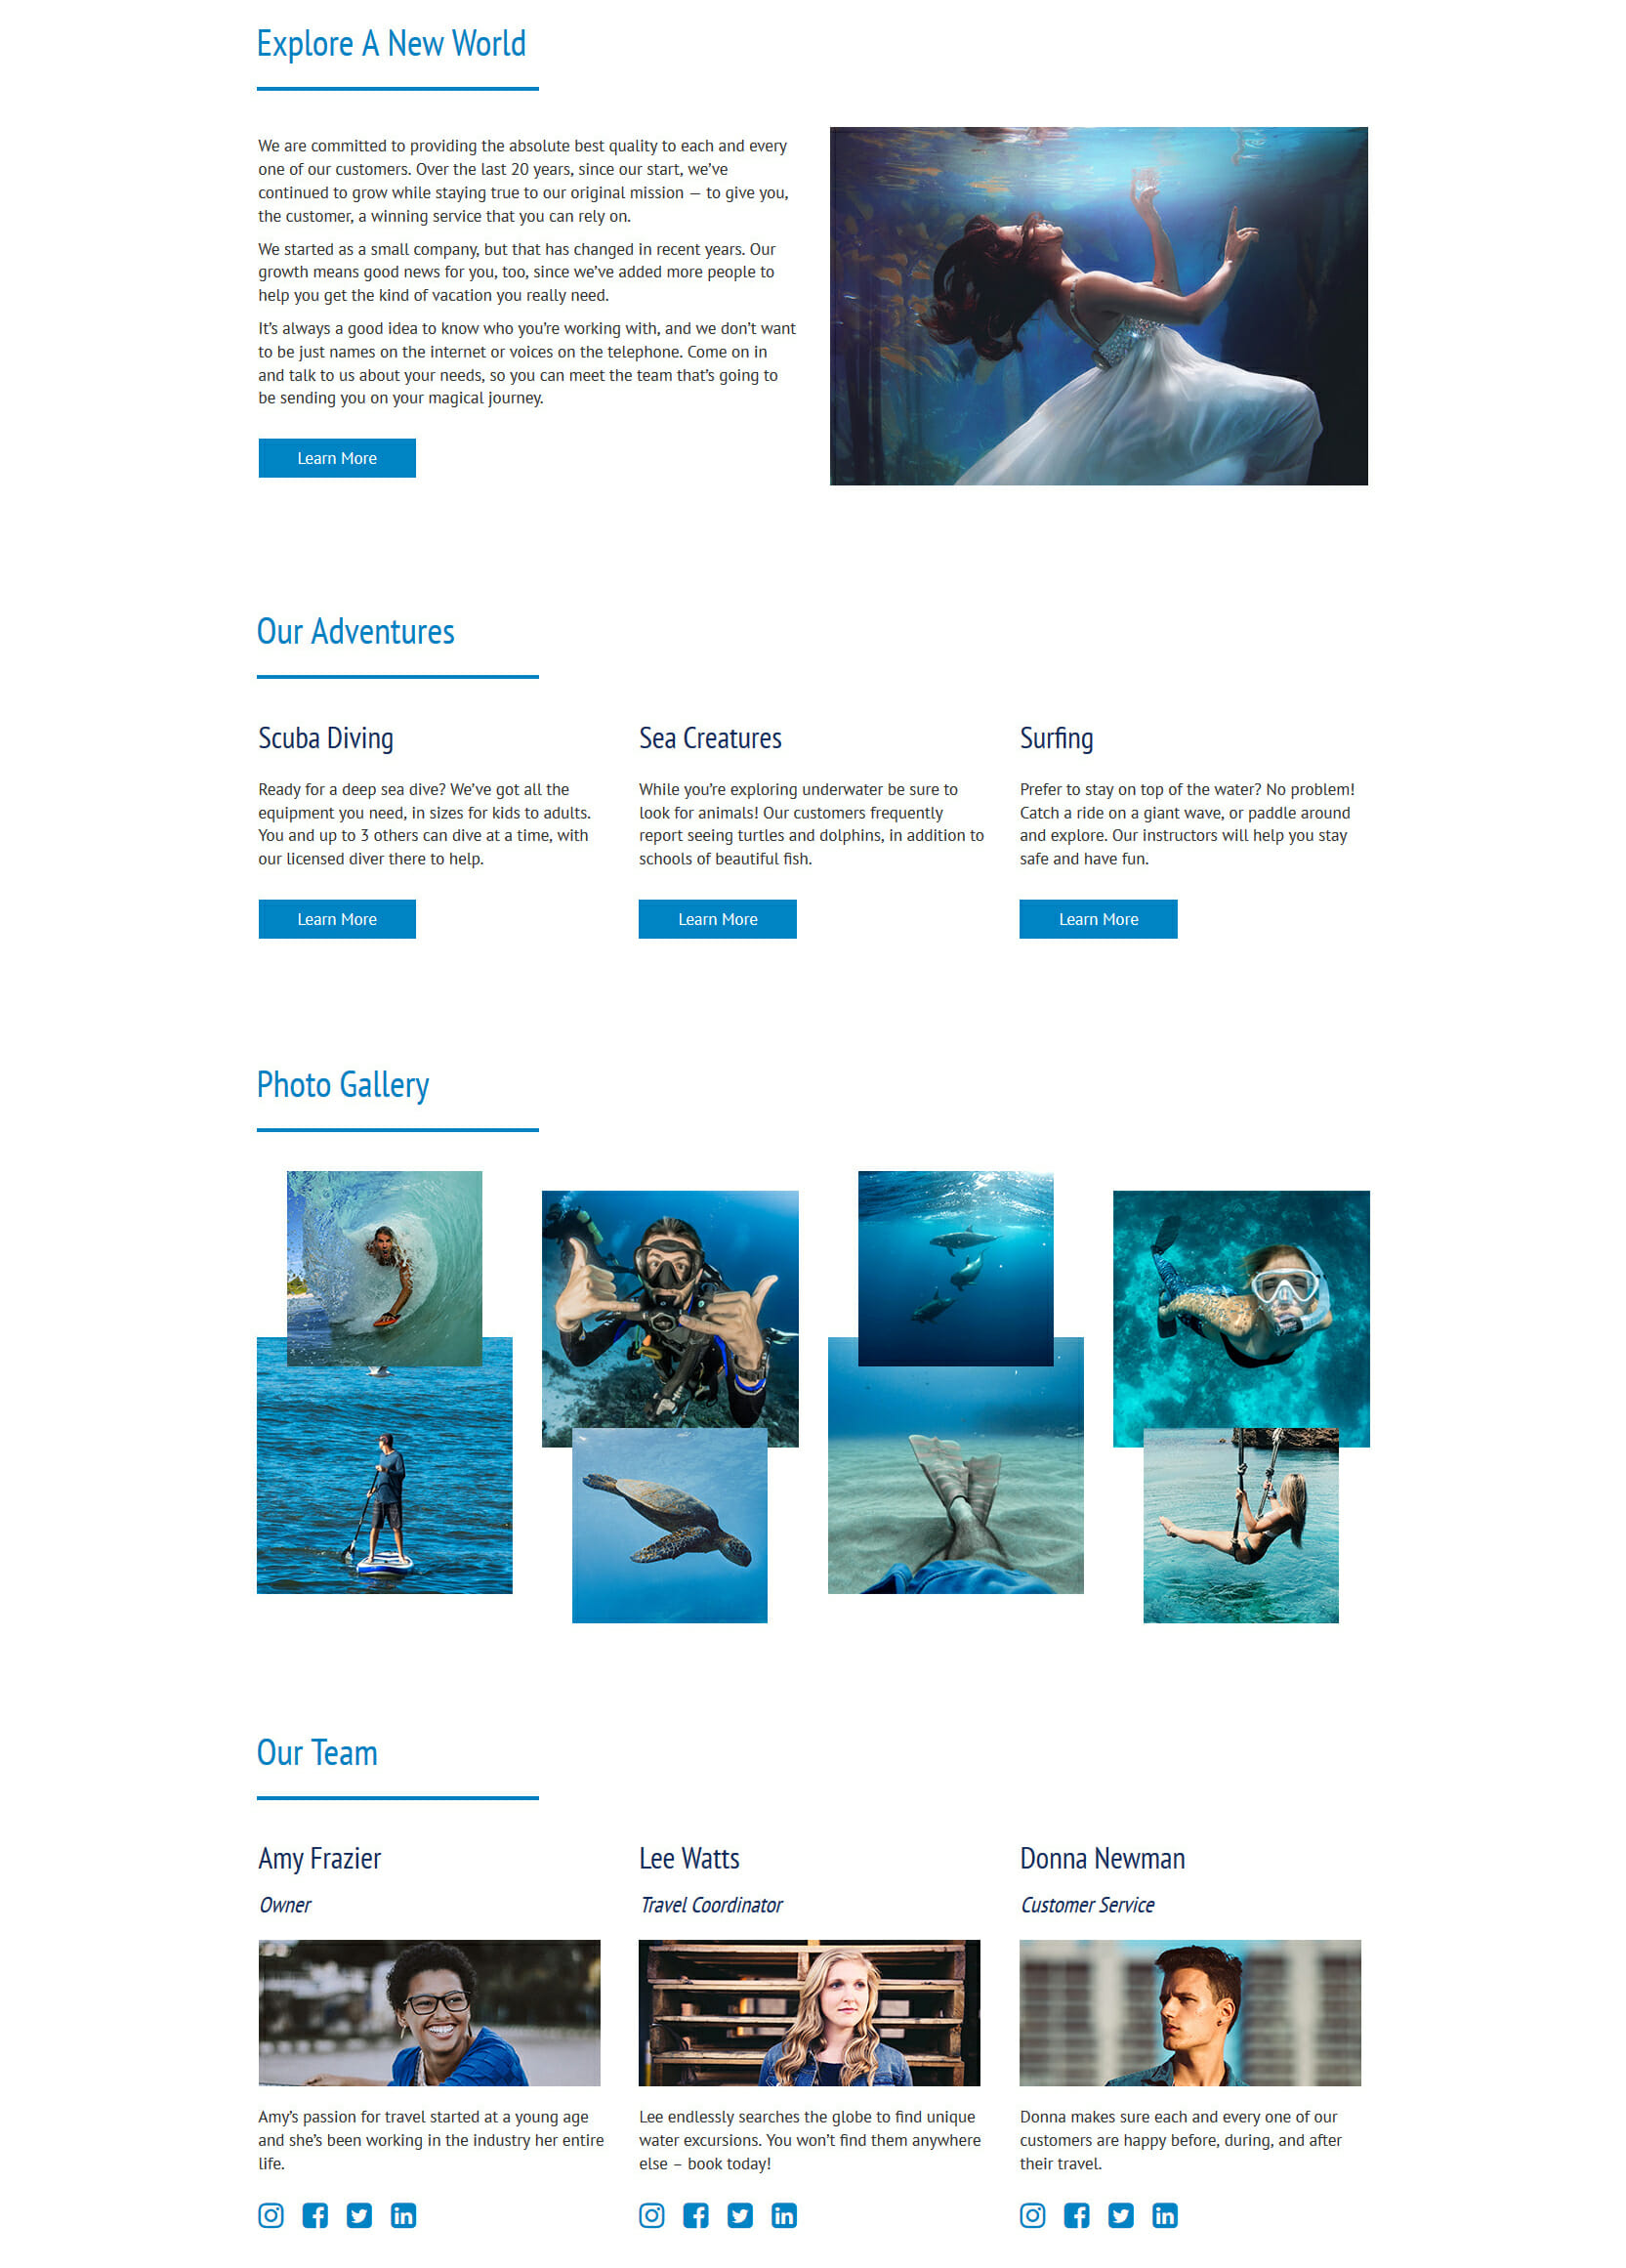 Showing off a new Premium WordPress Block for Creatively Displaying your images.